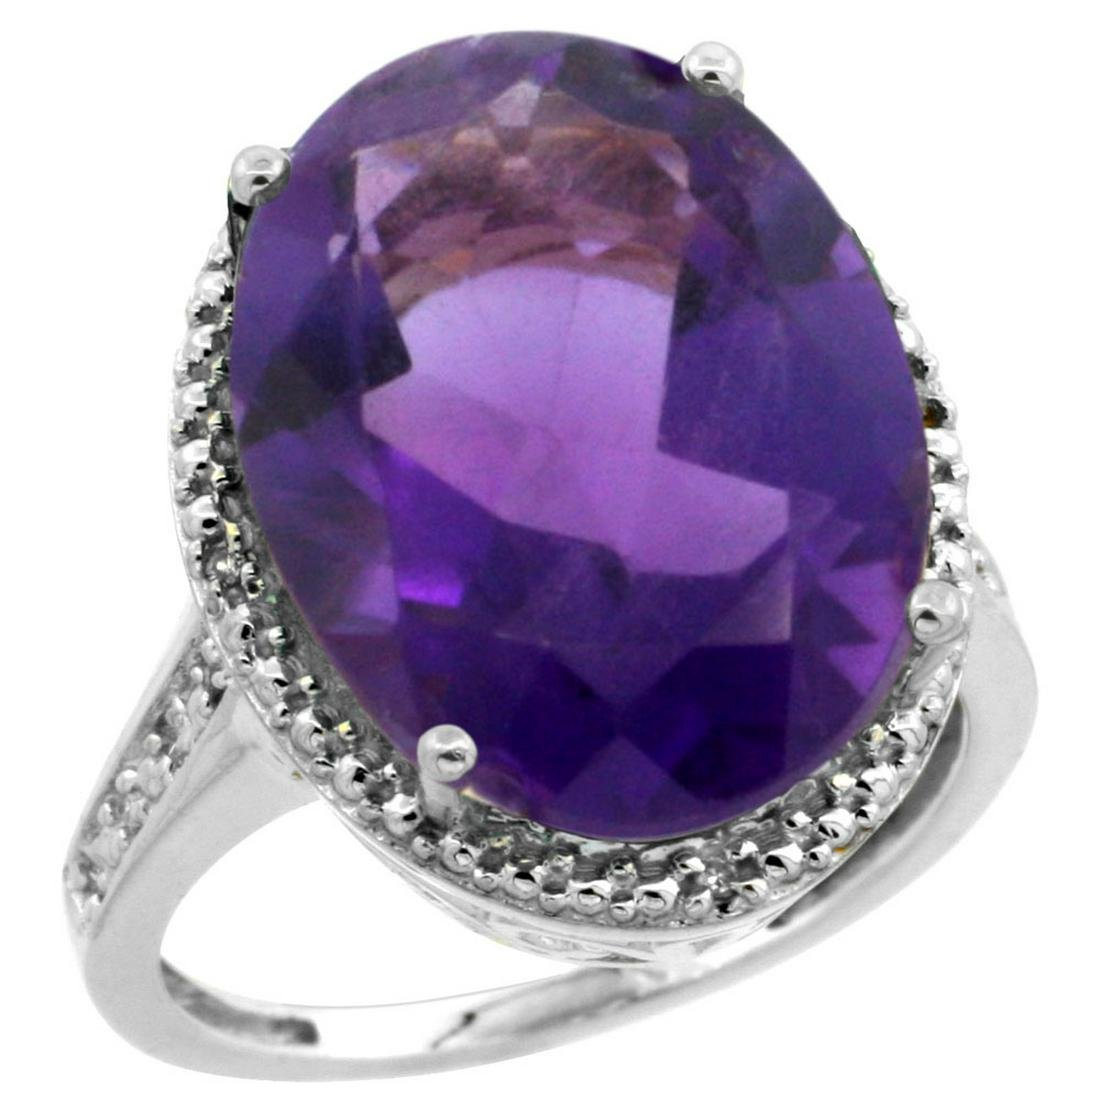 Natural 13.6 ctw Amethyst & Diamond Engagement Ring 14K